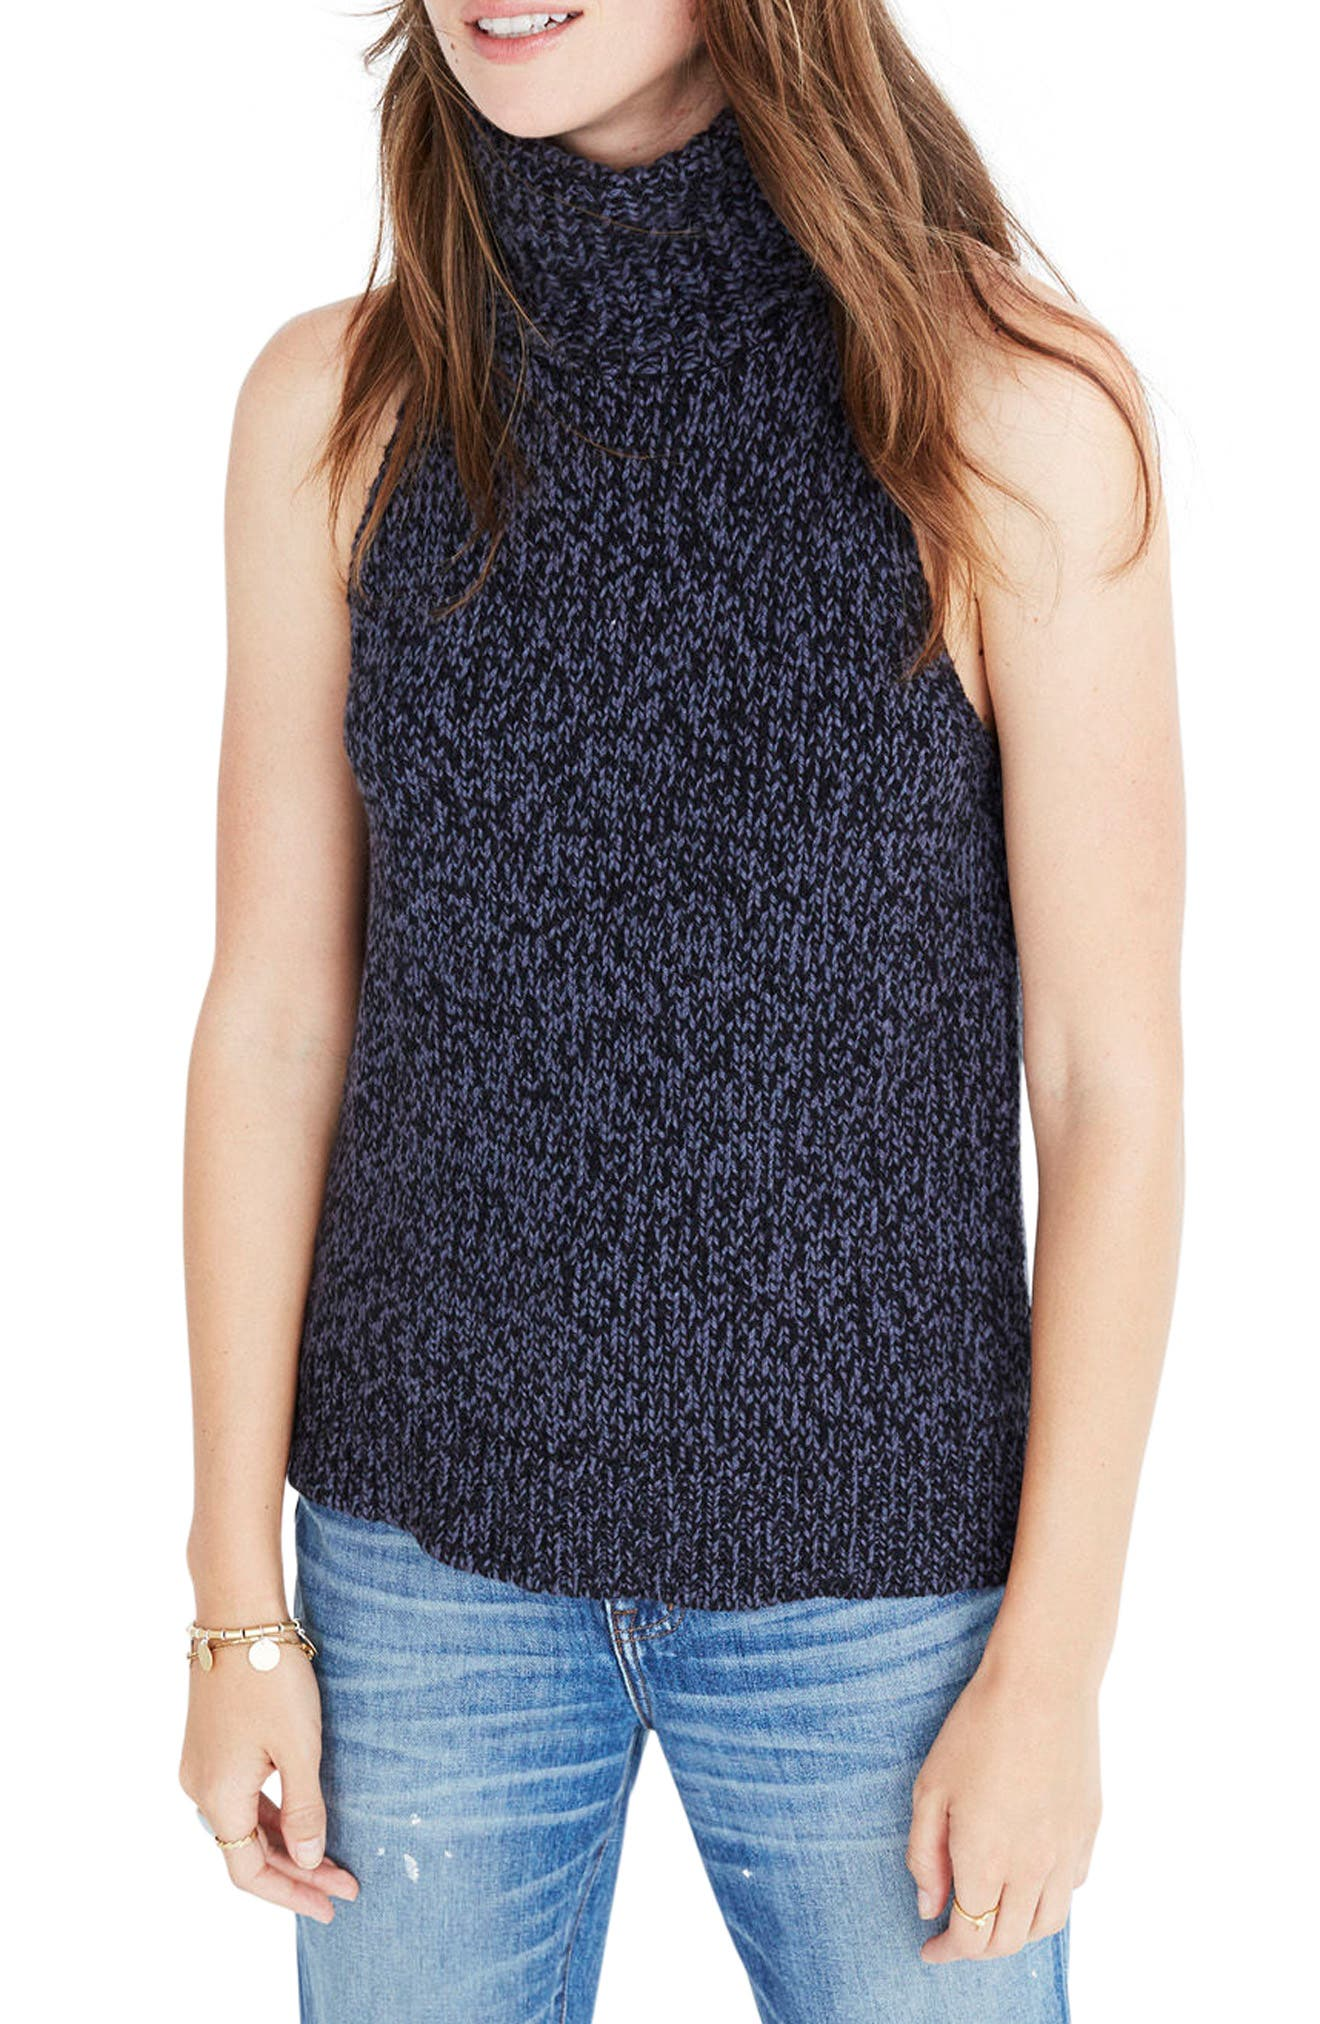 Main Image - Madewell Marled Sleeveless Turtleneck Sweater